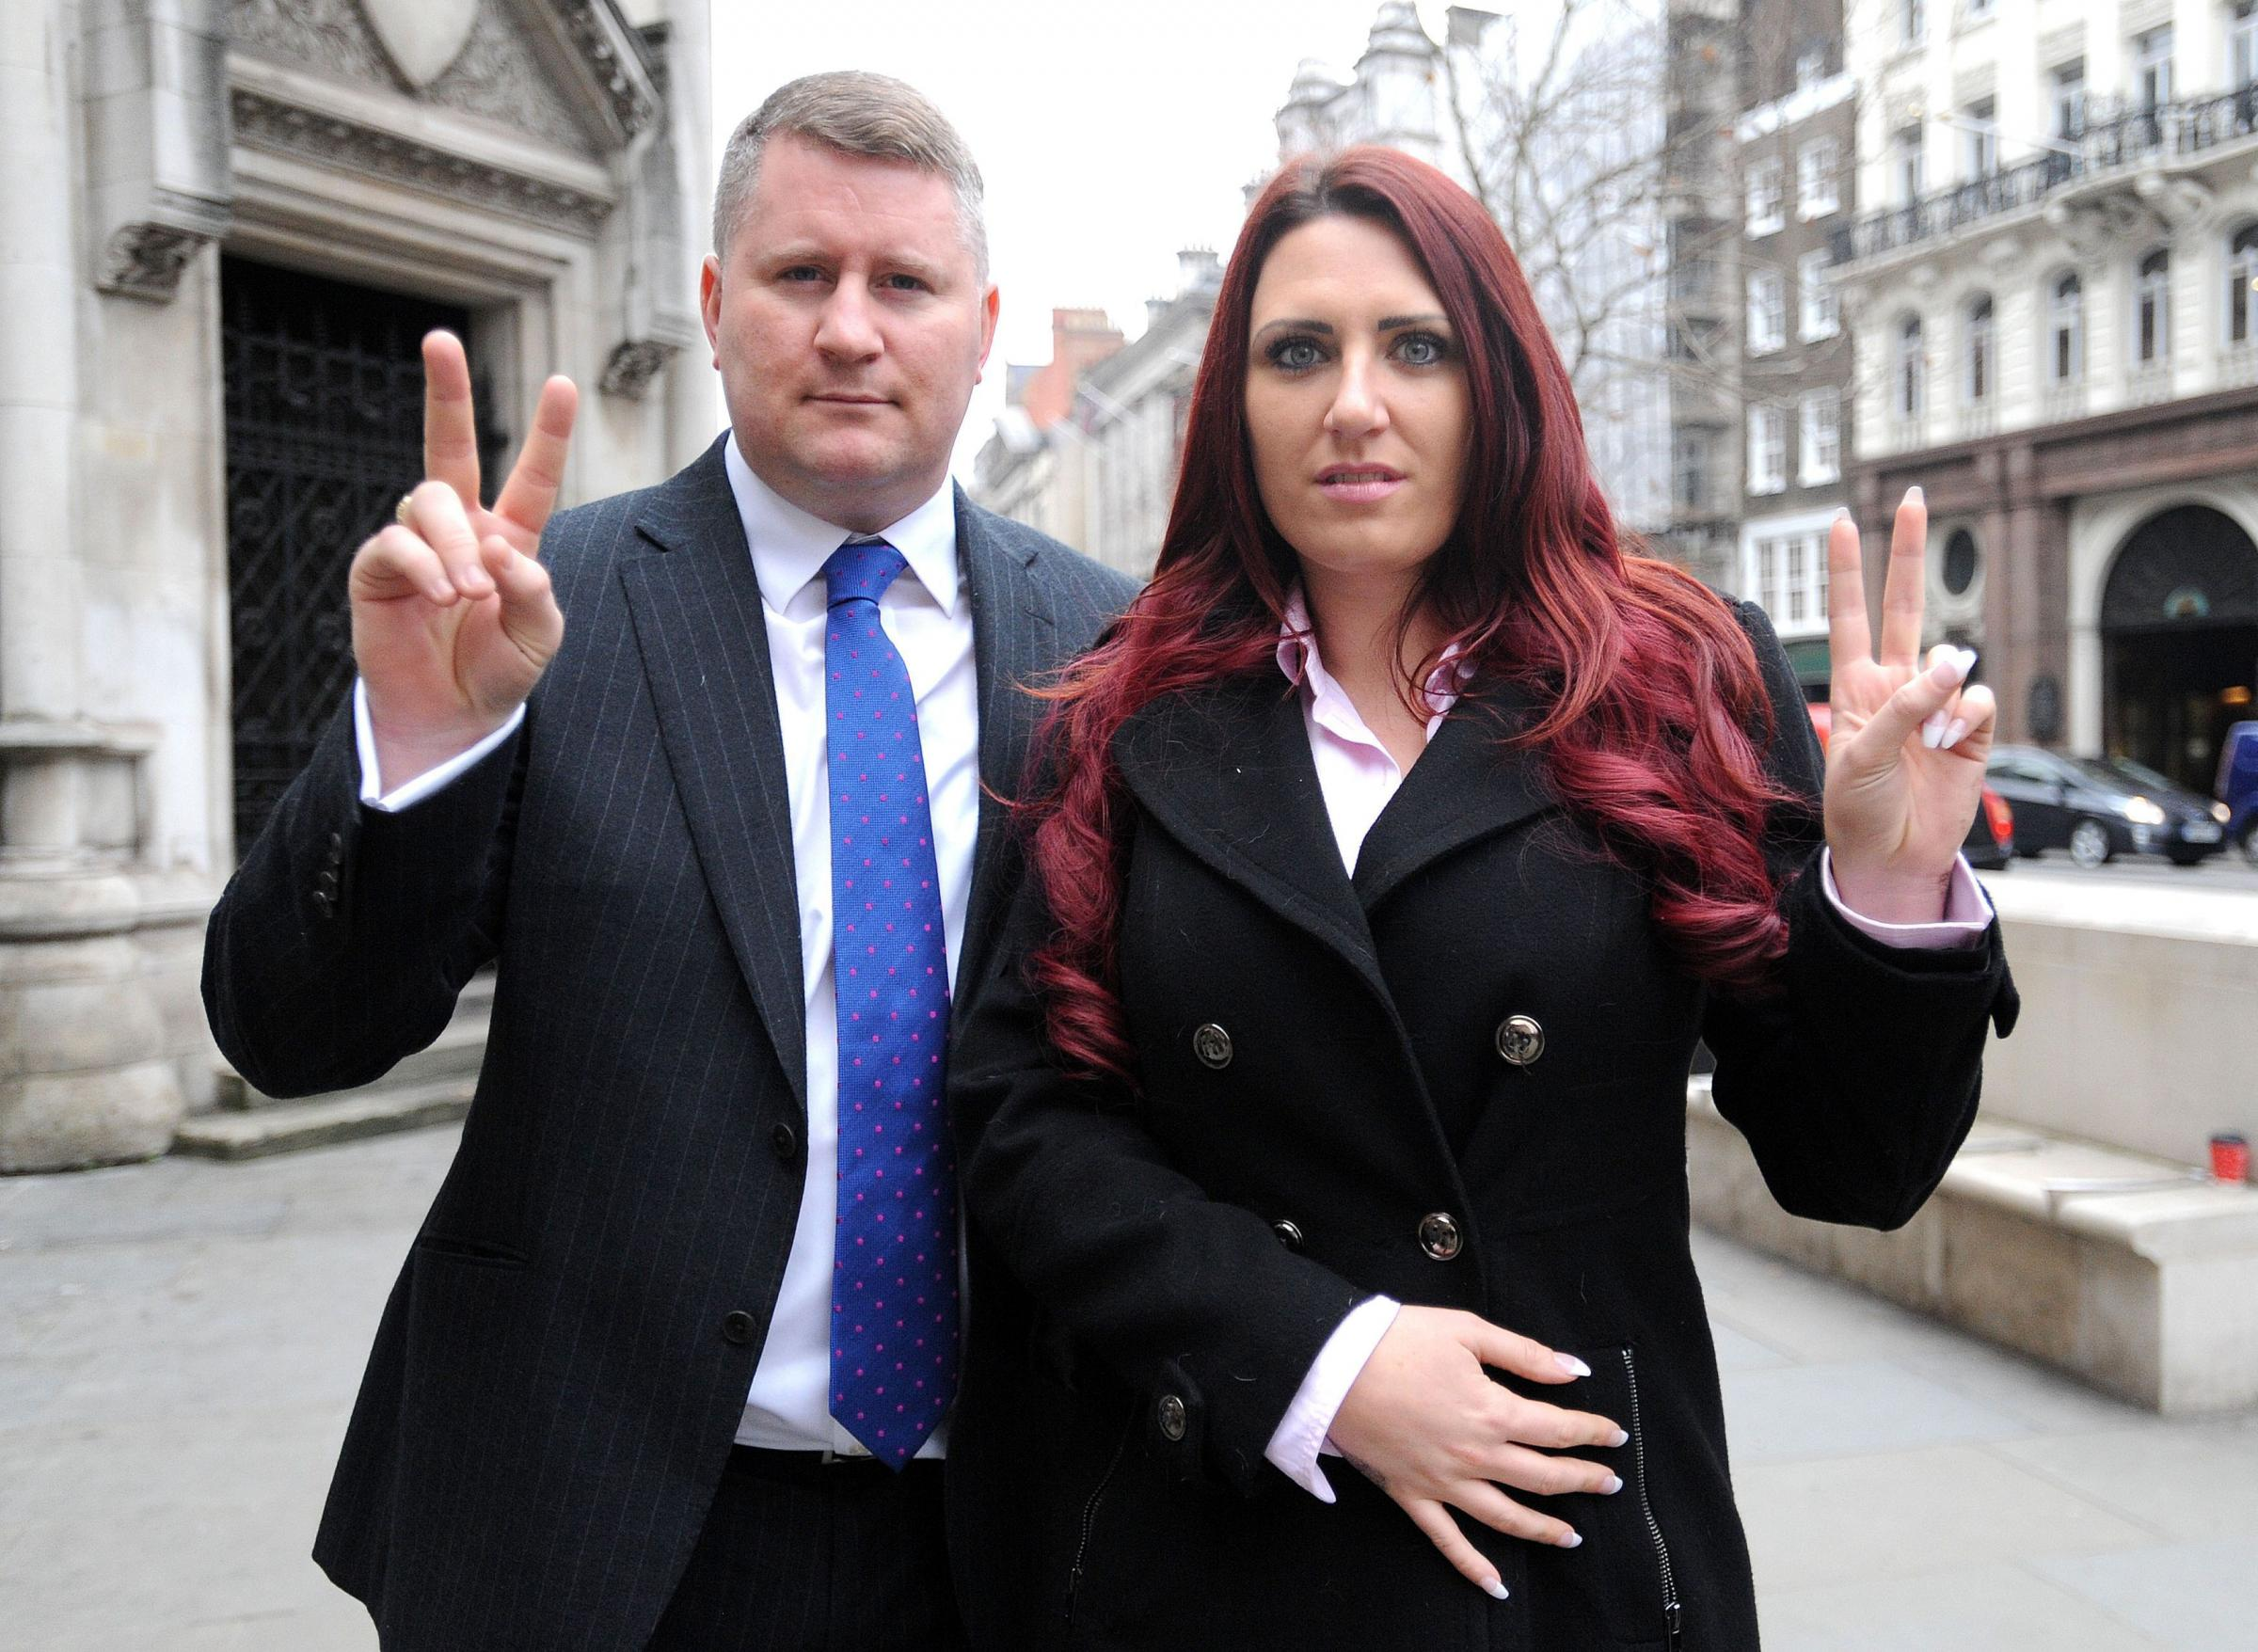 Britain First leaders Paul Golding and Jayda Fransen. Credit: Nick Ansell/PA Wire